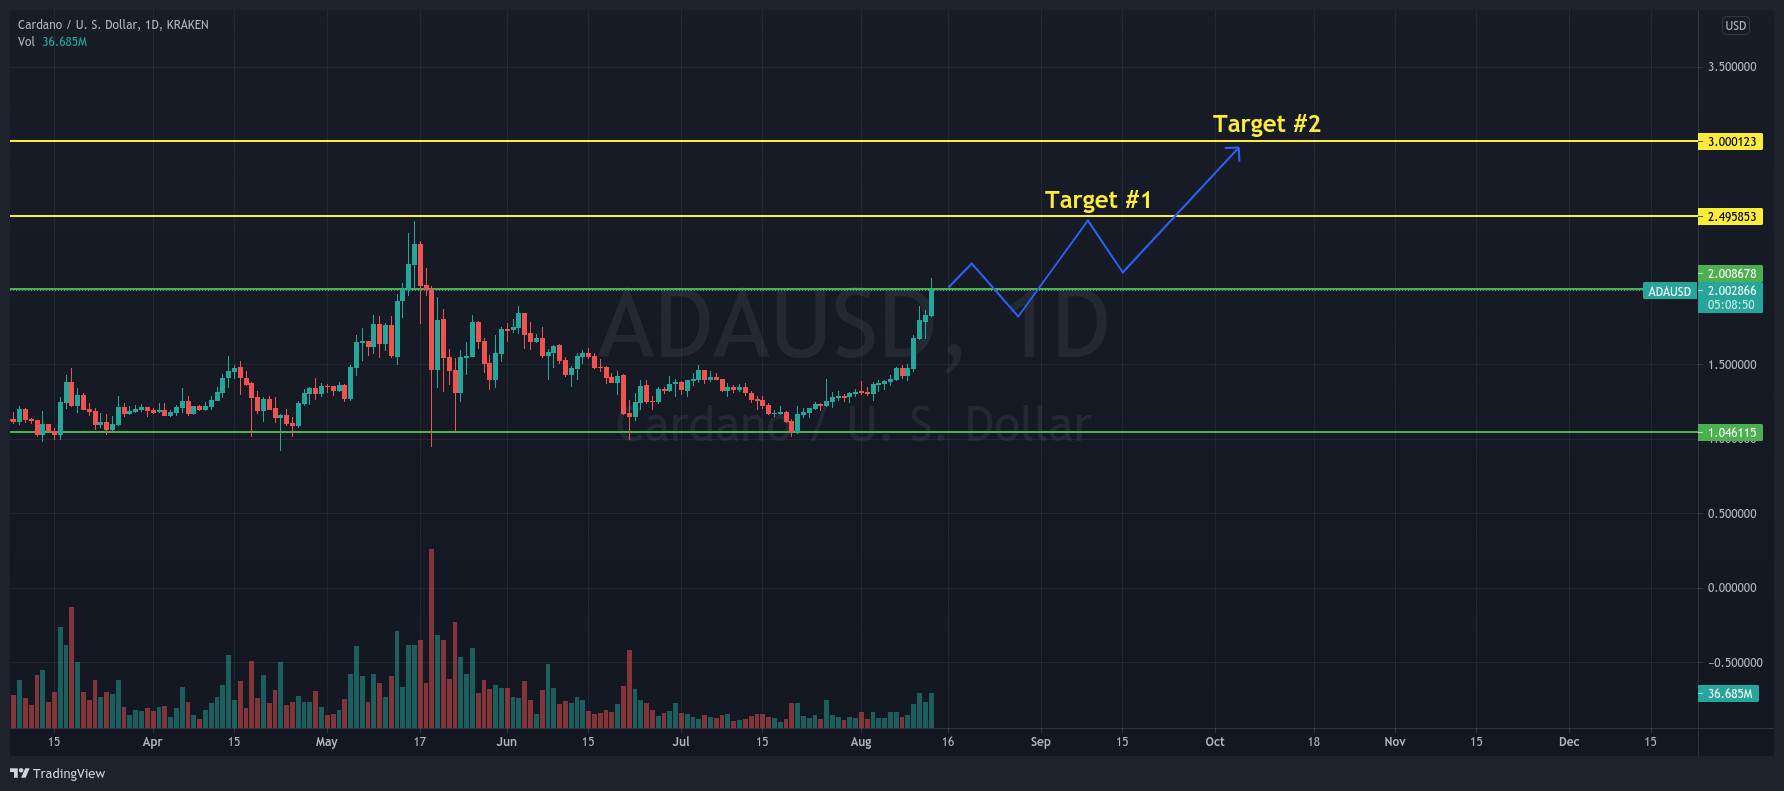 Cardano Price: ADA/USD 1-day chart showing ADA's next targets